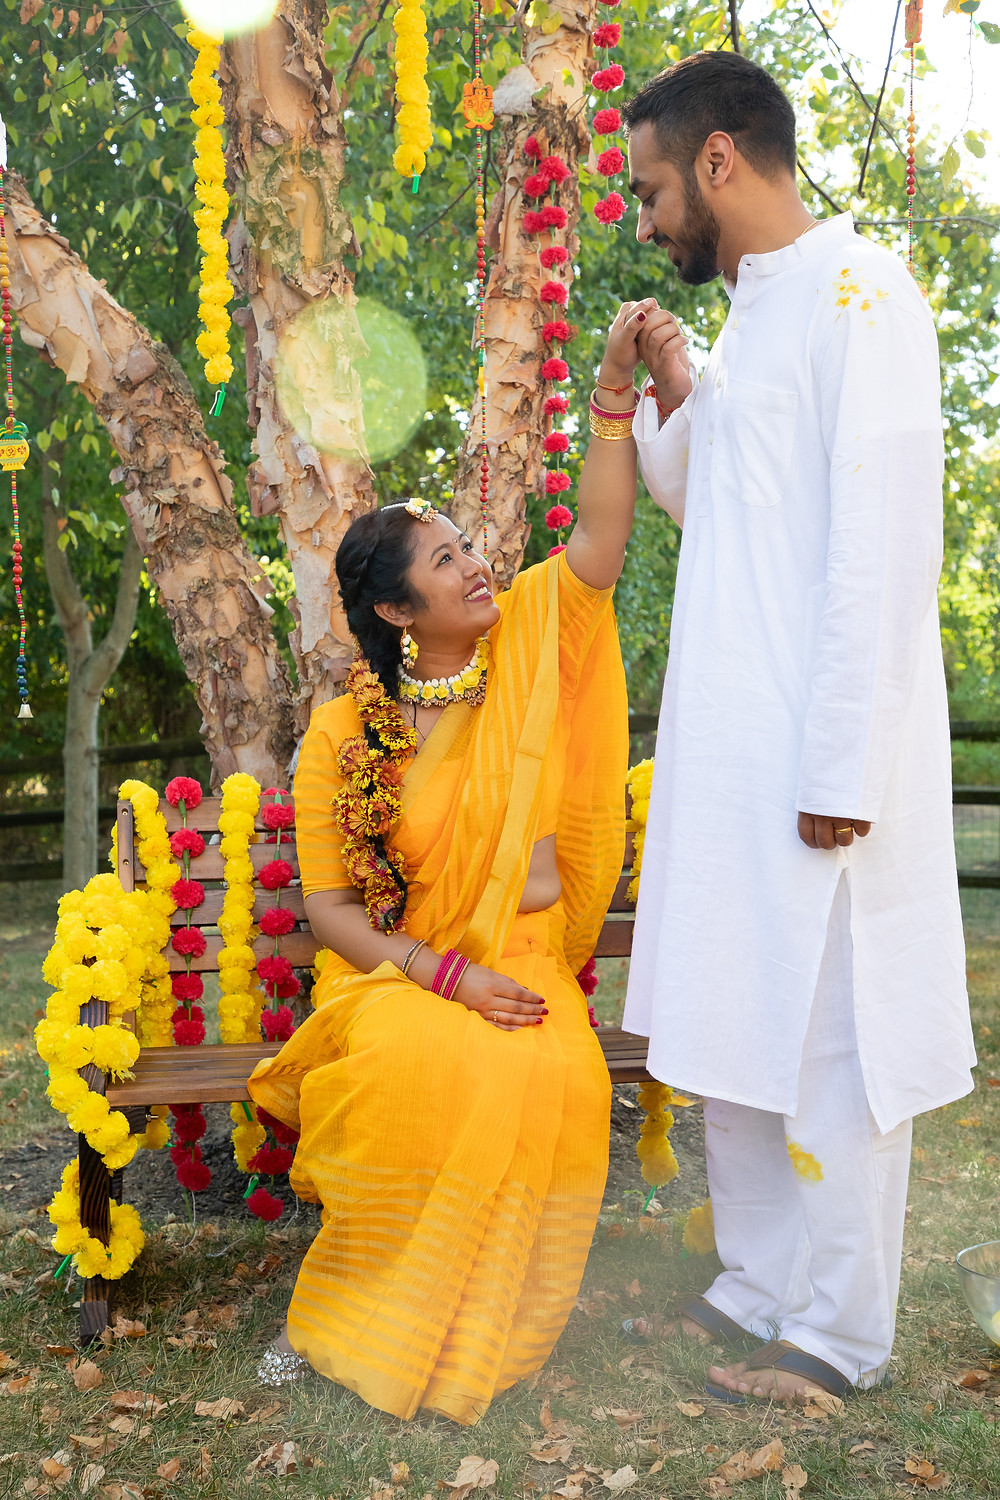 Indian wedding photographer captures image of indian husband smiling and holding wife's hand .